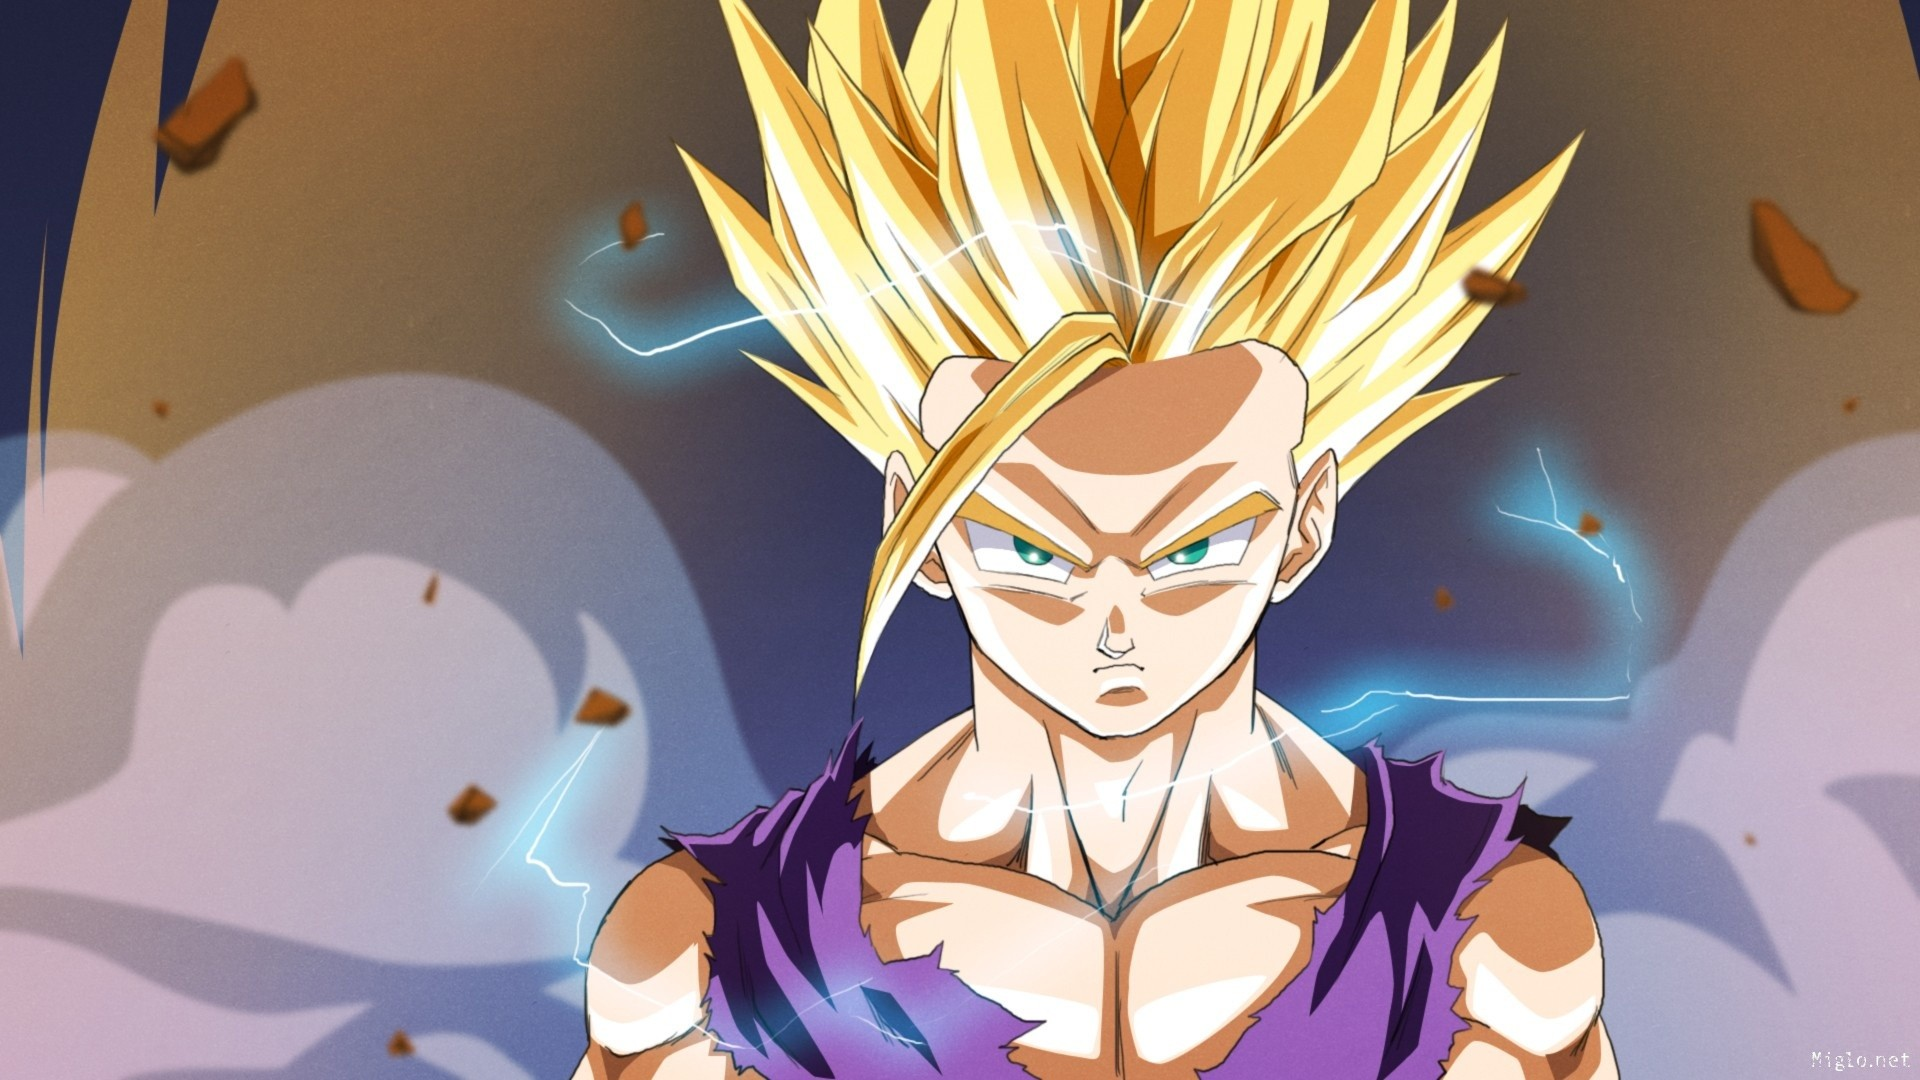 Dragon Ball Z Hd Wallpapers Backgrounds Wallpaper 1920x1080